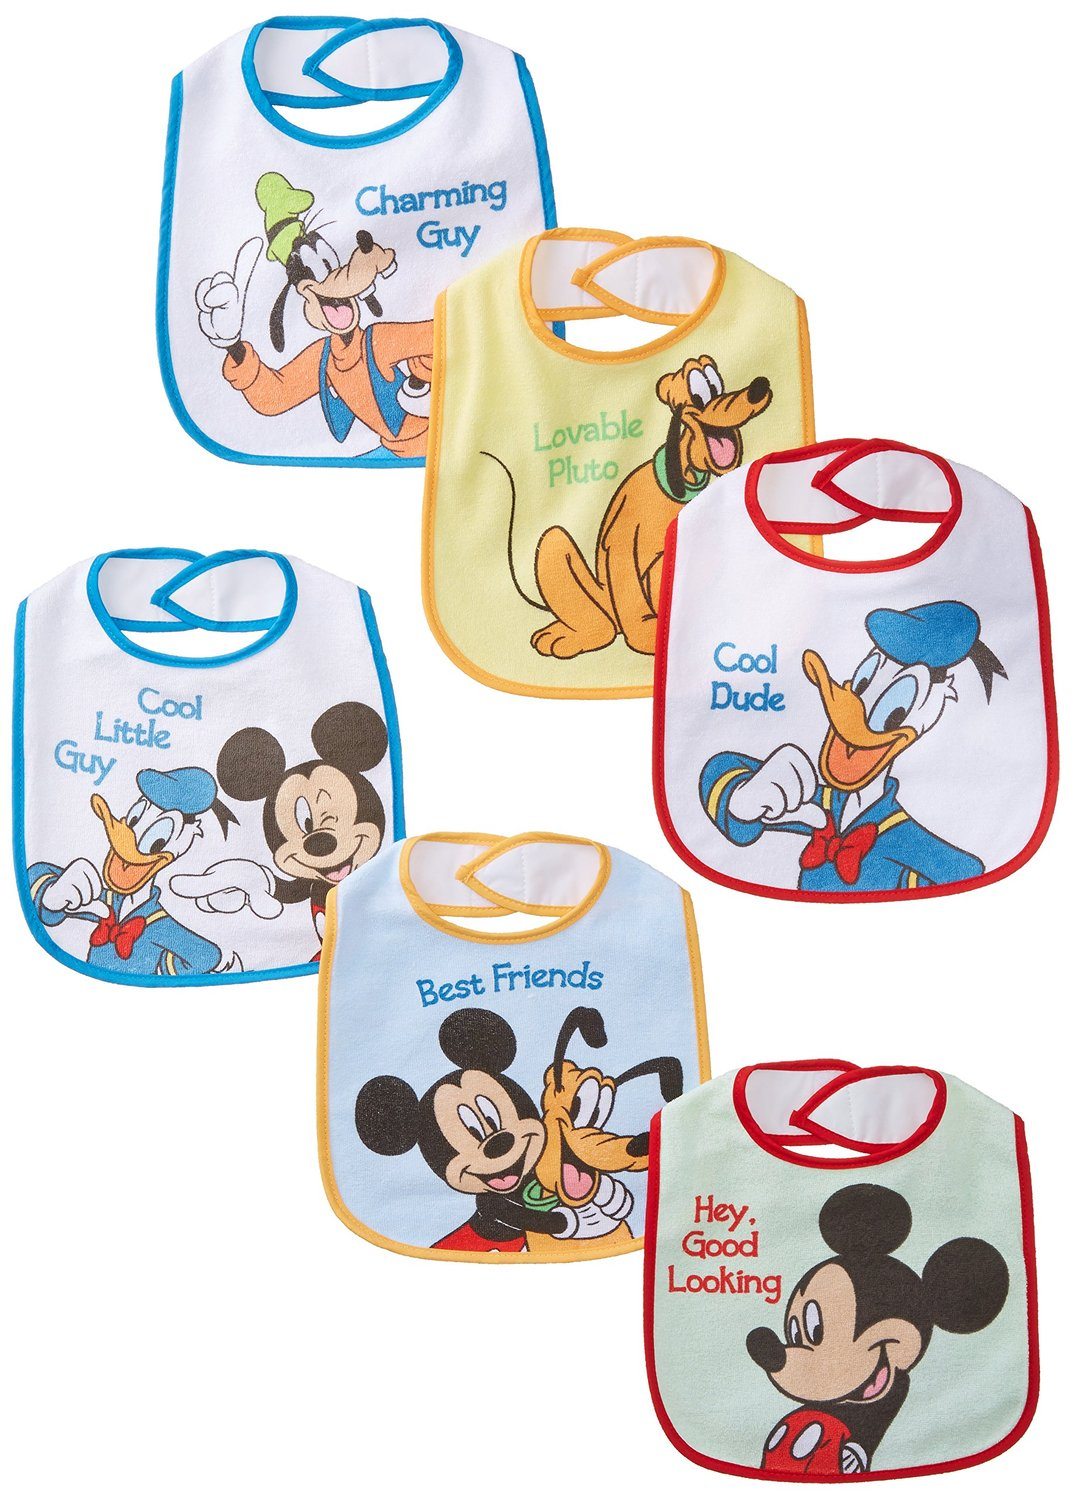 Must-Have Disney Items for a Baby Registry